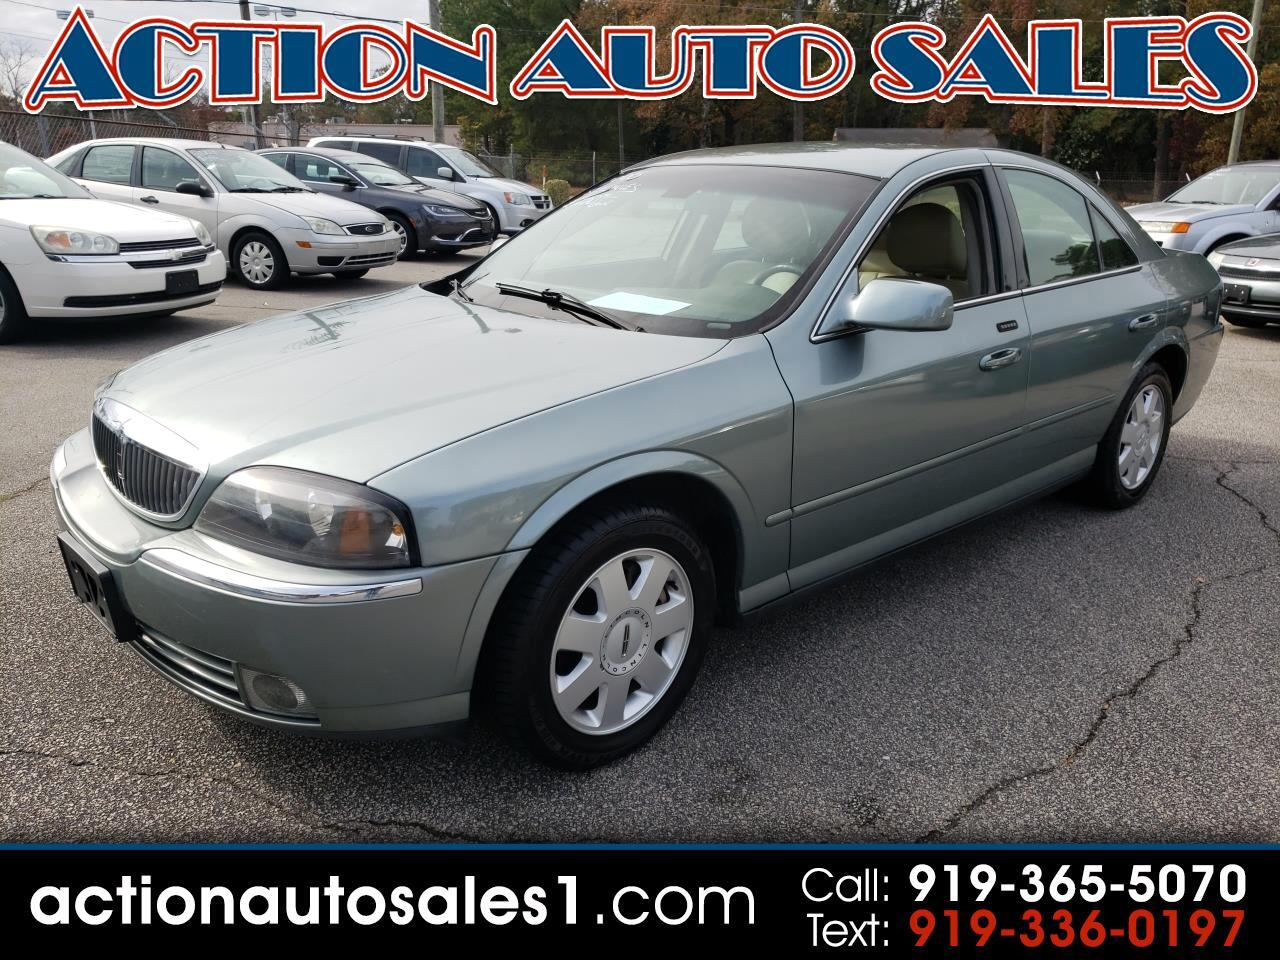 2005 Lincoln LS 4dr Sdn V6 Auto w/Luxury Pkg